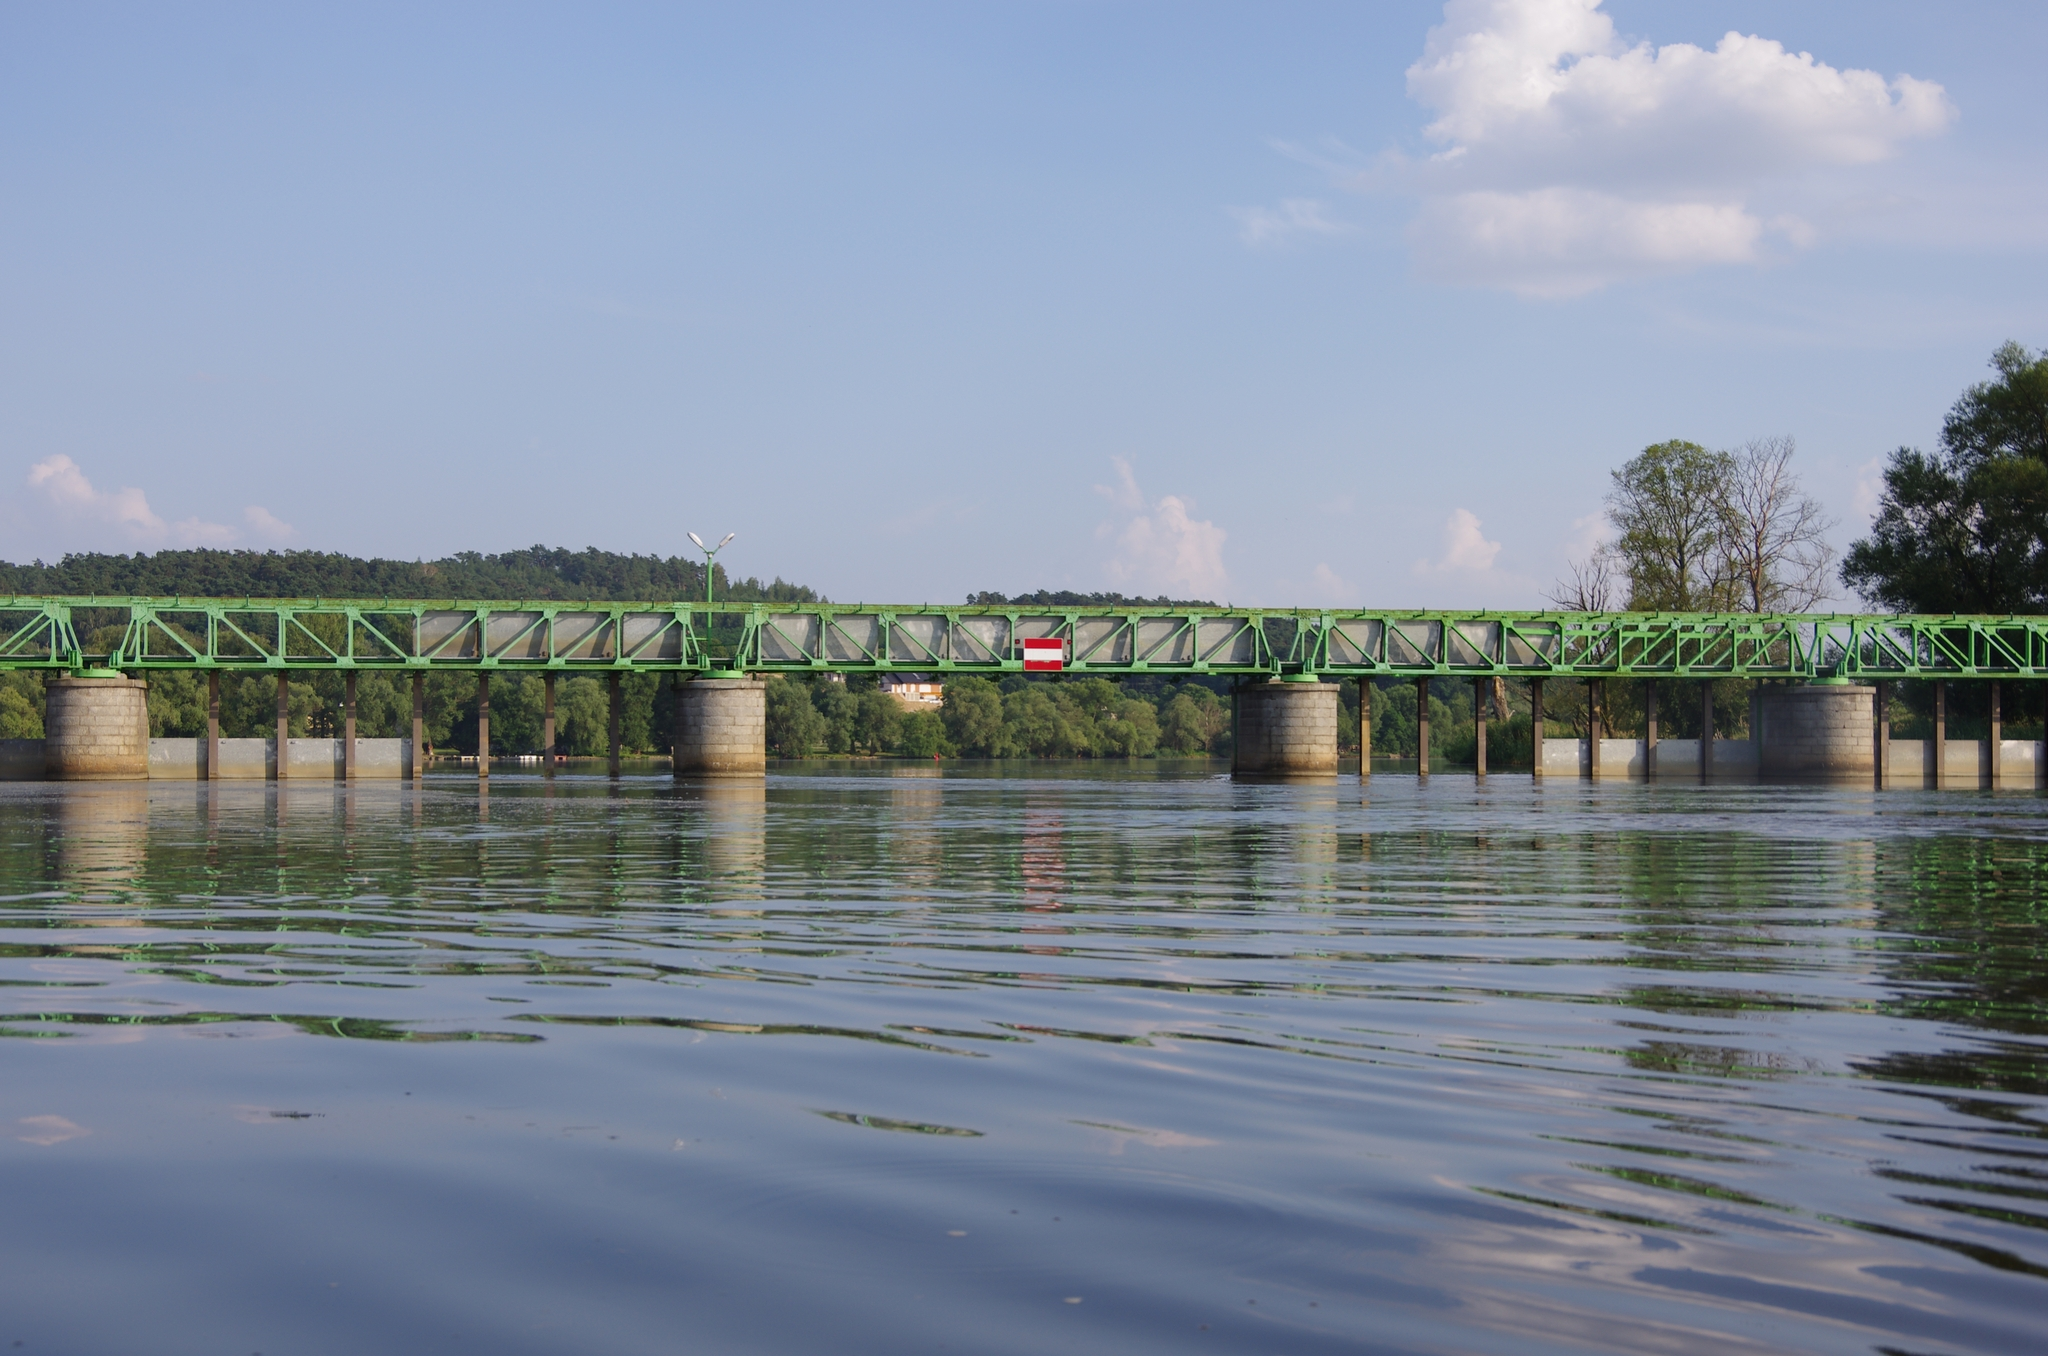 kayaking-odra-east-and-west_17-21-39_25-07-2016